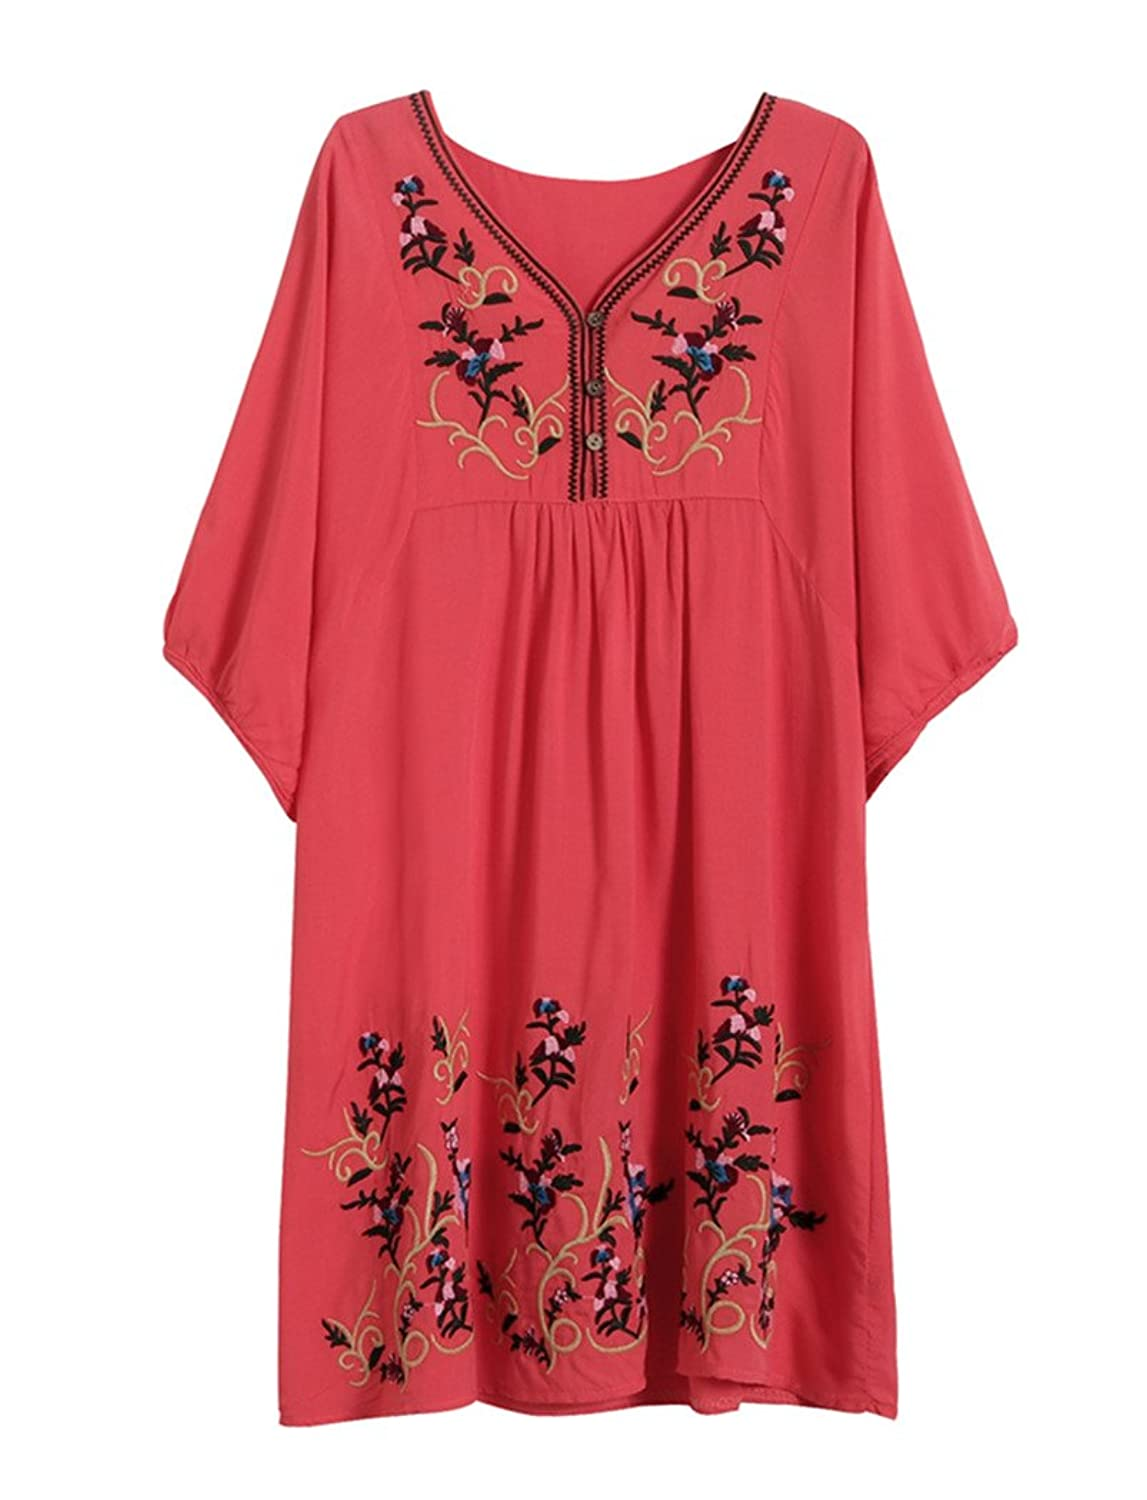 Kafeimali Women's T-shirt Tunic Dresses Mexican Embroidered Peasant Tops Blouses